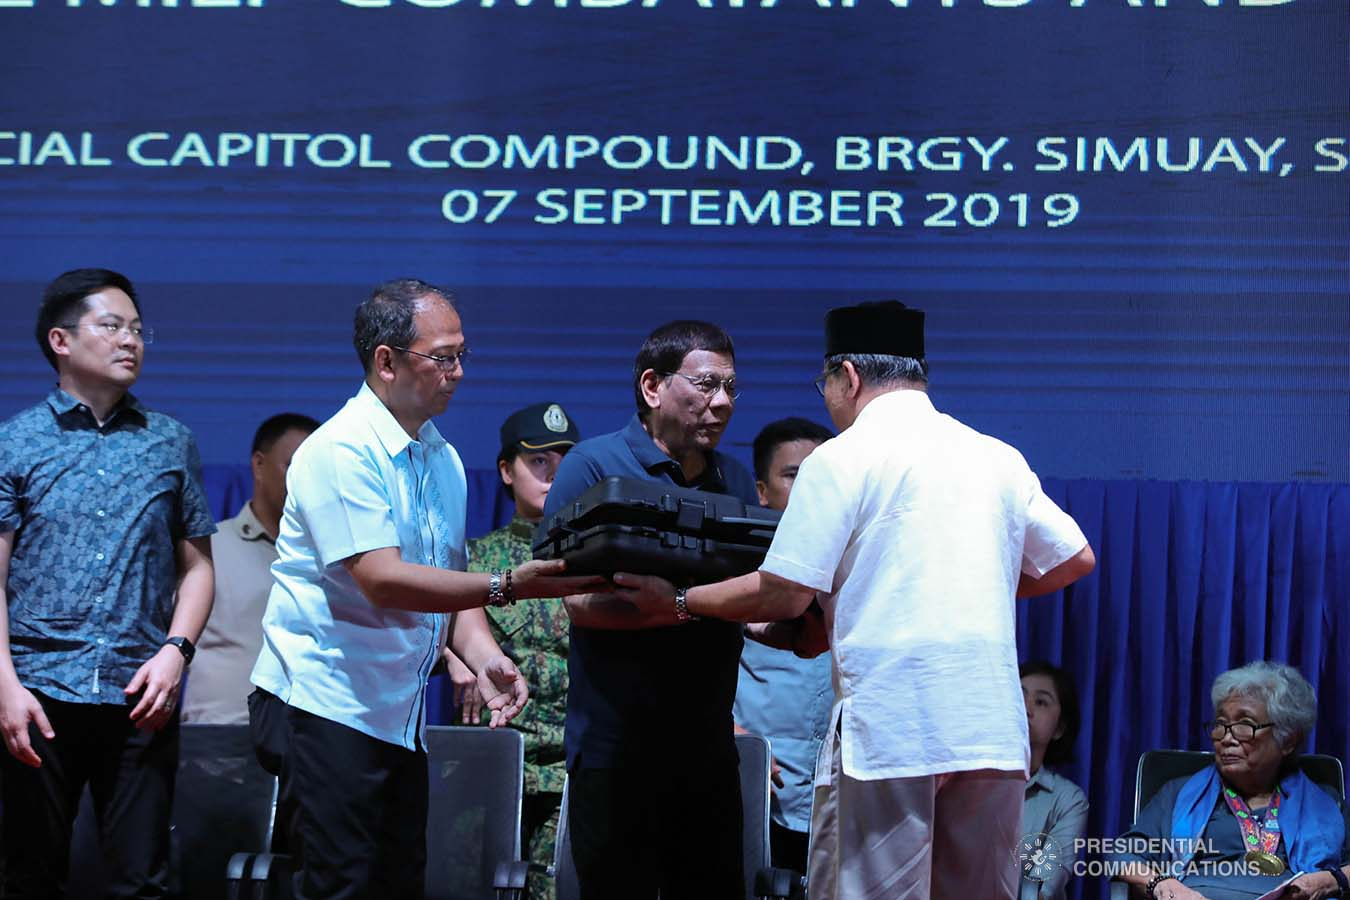 President Rodrigo Roa Duterte receives a token from Bangsamoro Autonomous Region in Muslim Mindanao (BARMM) Interim Chief Minister Al Haj Murad Ebrahim during the launch of the second phase of the decommissioning of Moro Islamic Liberation Front combatants and weapons at the Old Provincial Capitol Compound in Sultan Kudarat, Maguindanao on September 7, 2019. ROBINSON NIÑAL JR./PRESIDENTIAL PHOTO